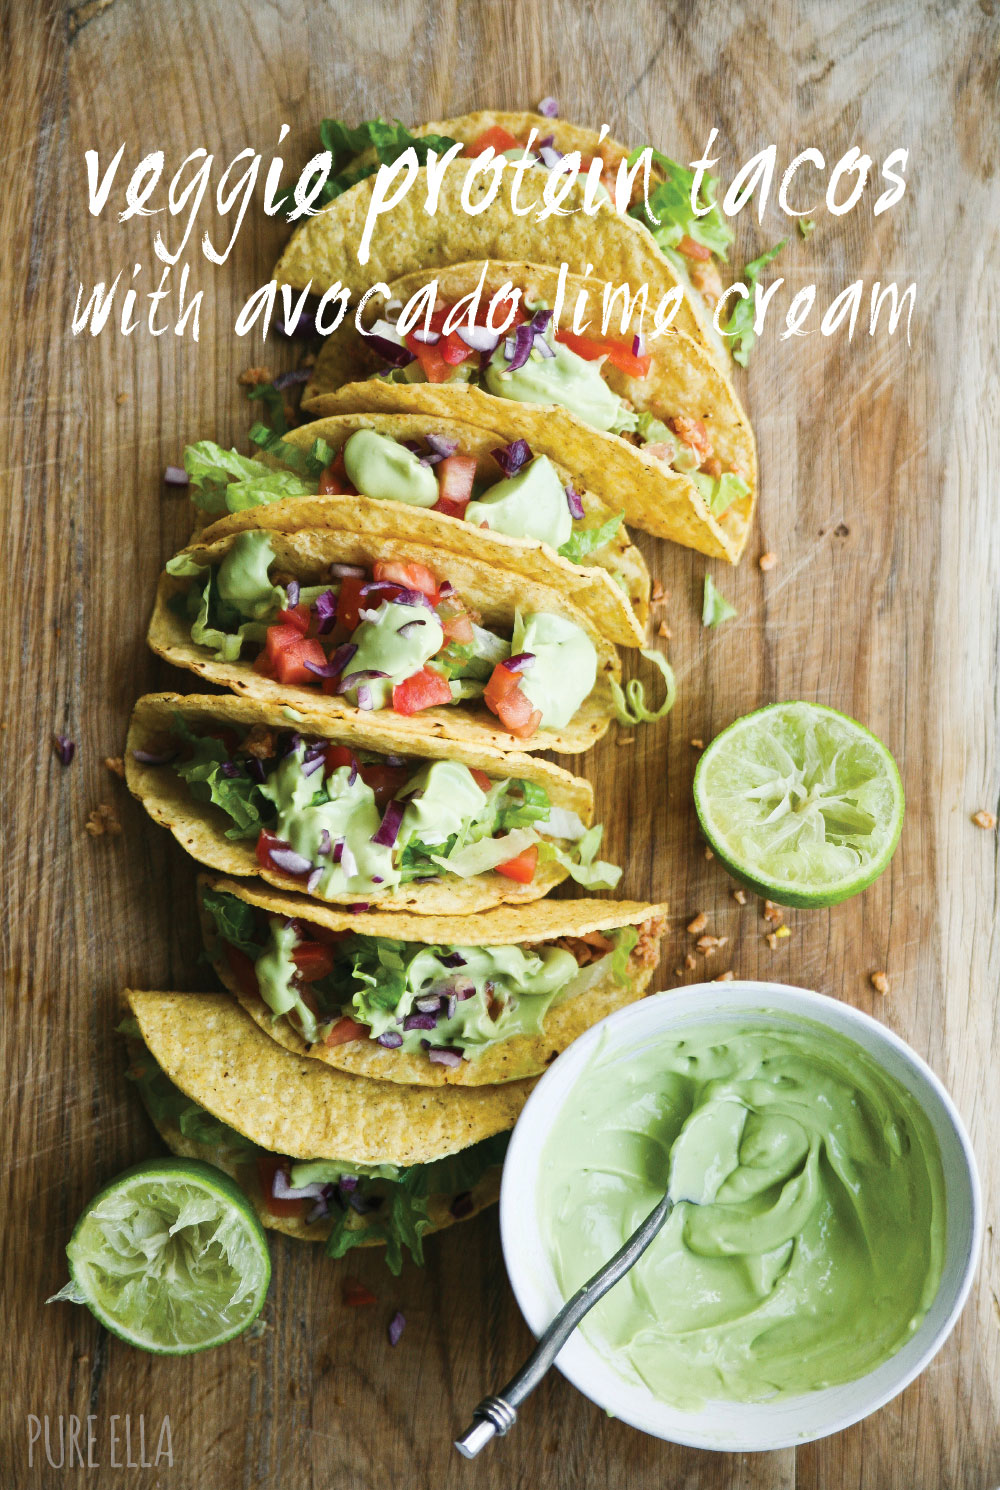 Pure-Ella-gluten-free-and-vegan-Veggie-Protein-Tacos-with-avocado-lime-cream